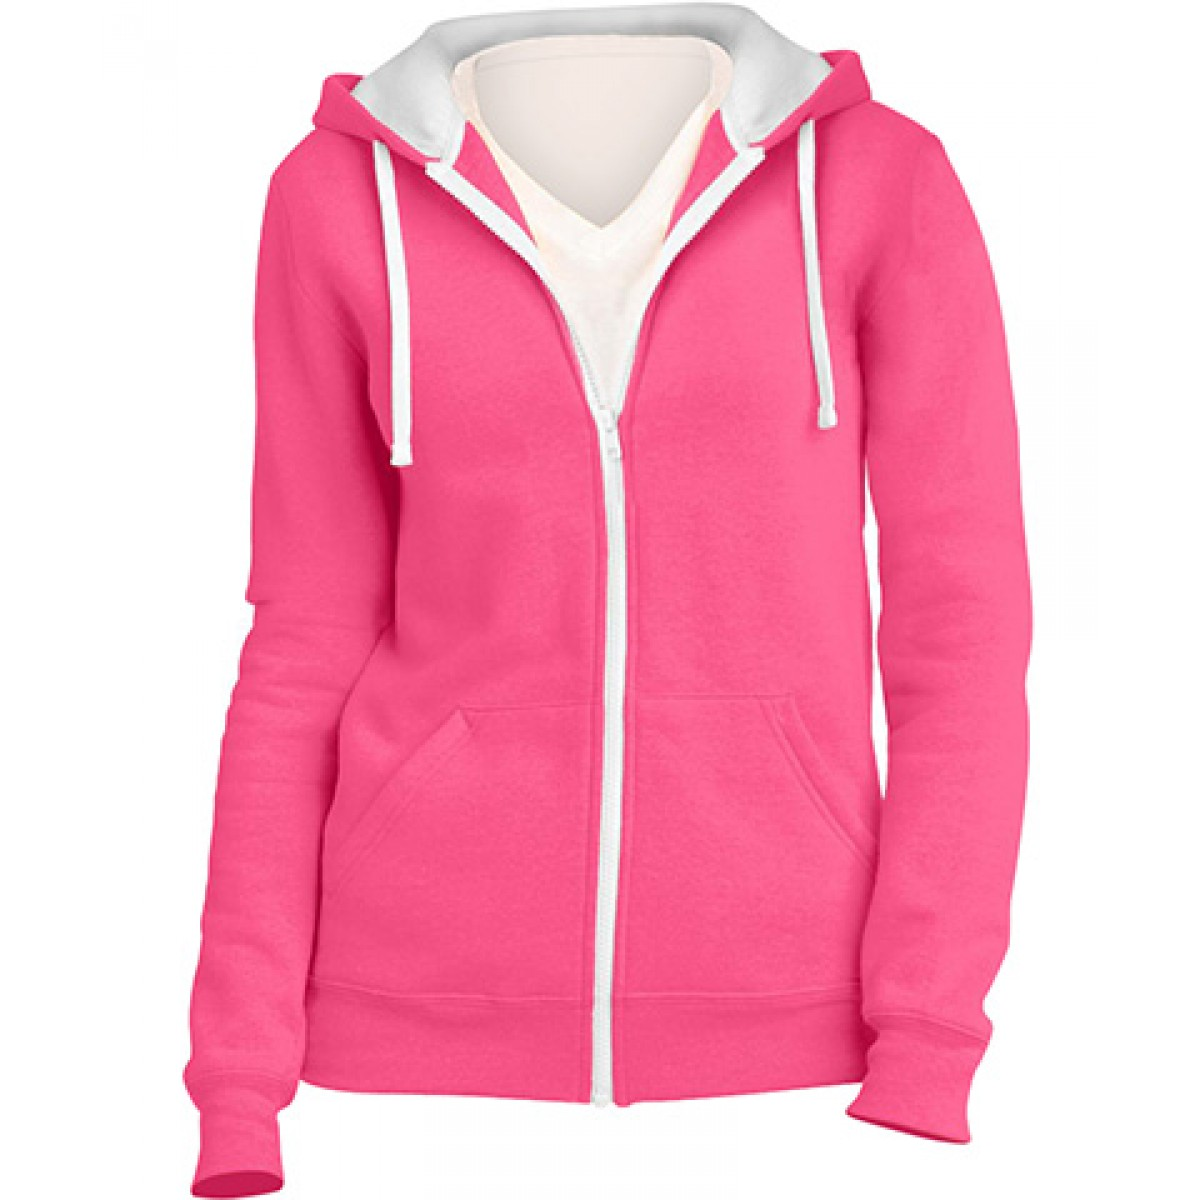 Juniors Full-Zip Hoodie-Neon Pink-2XL